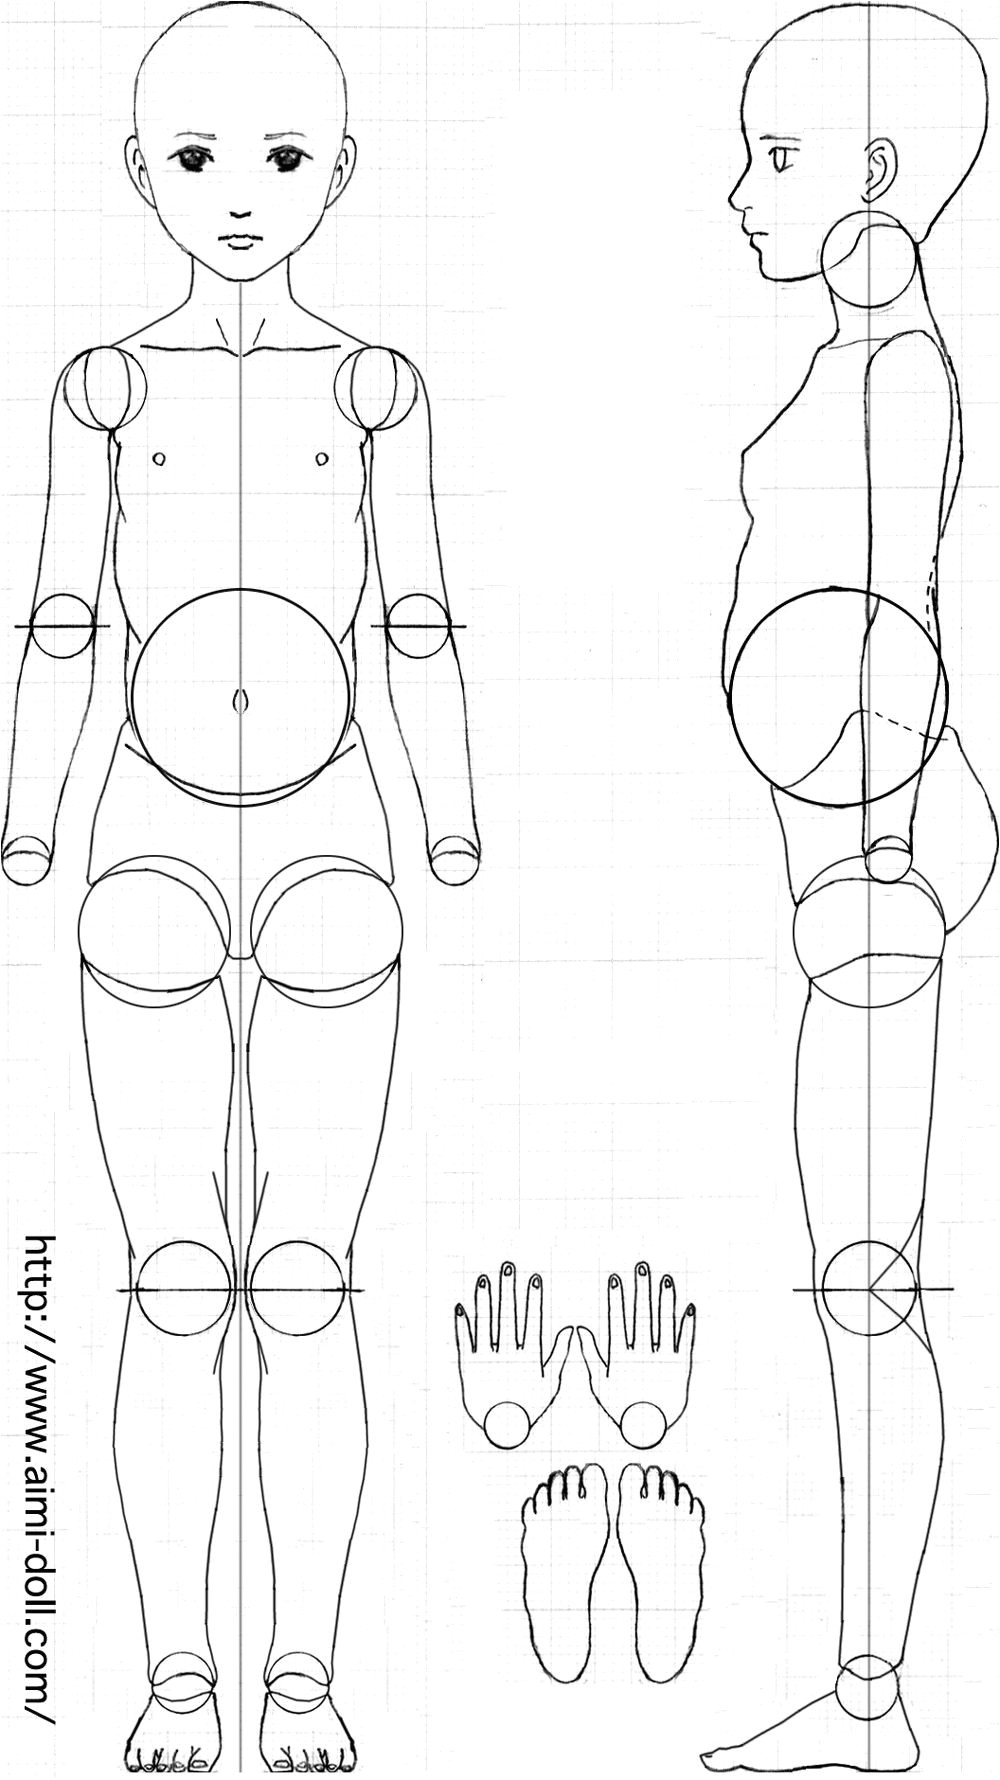 Jointed Paper Doll Template Porcelain Ball Jointed Dolls Ball Jointed Dolls